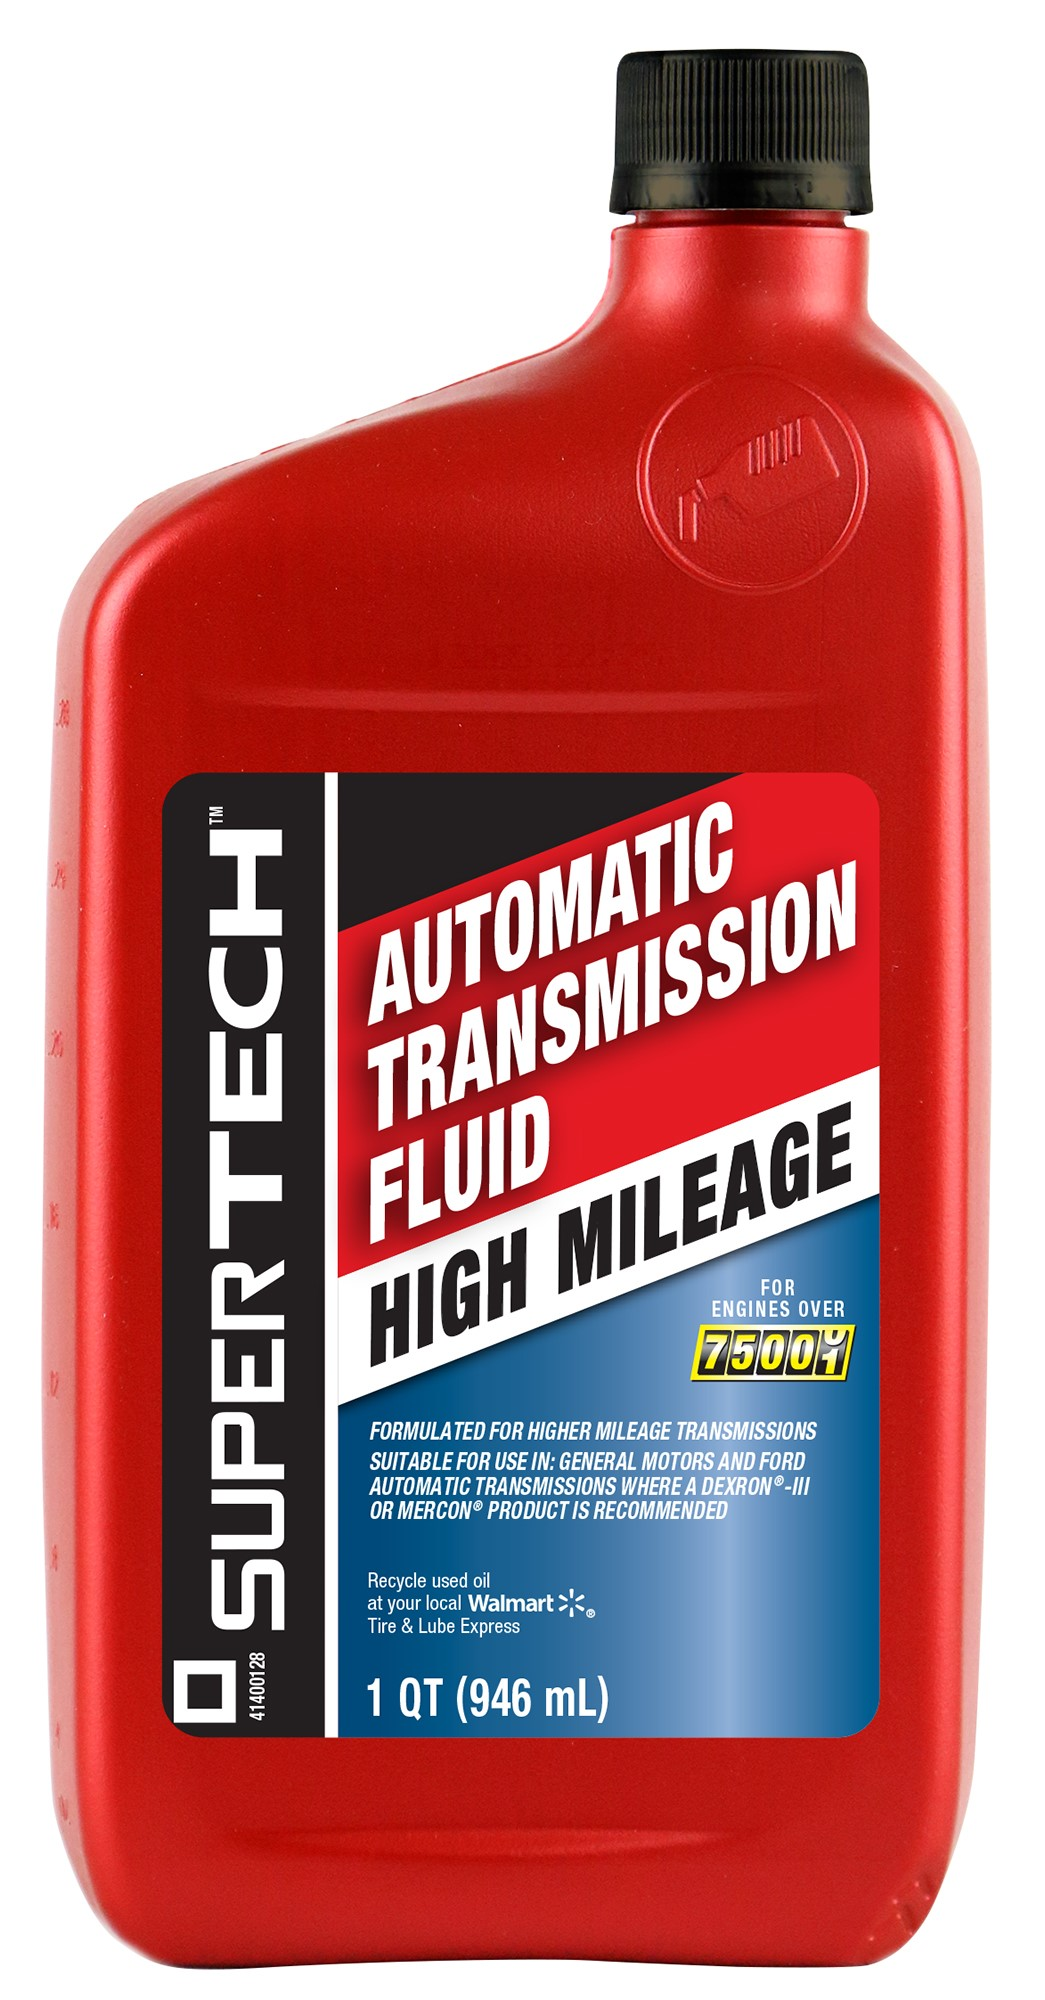 Automatic Transmission Fluid >> Super Tech High Mileage Automatic Transmission Fluid 1 Qt Walmart Com